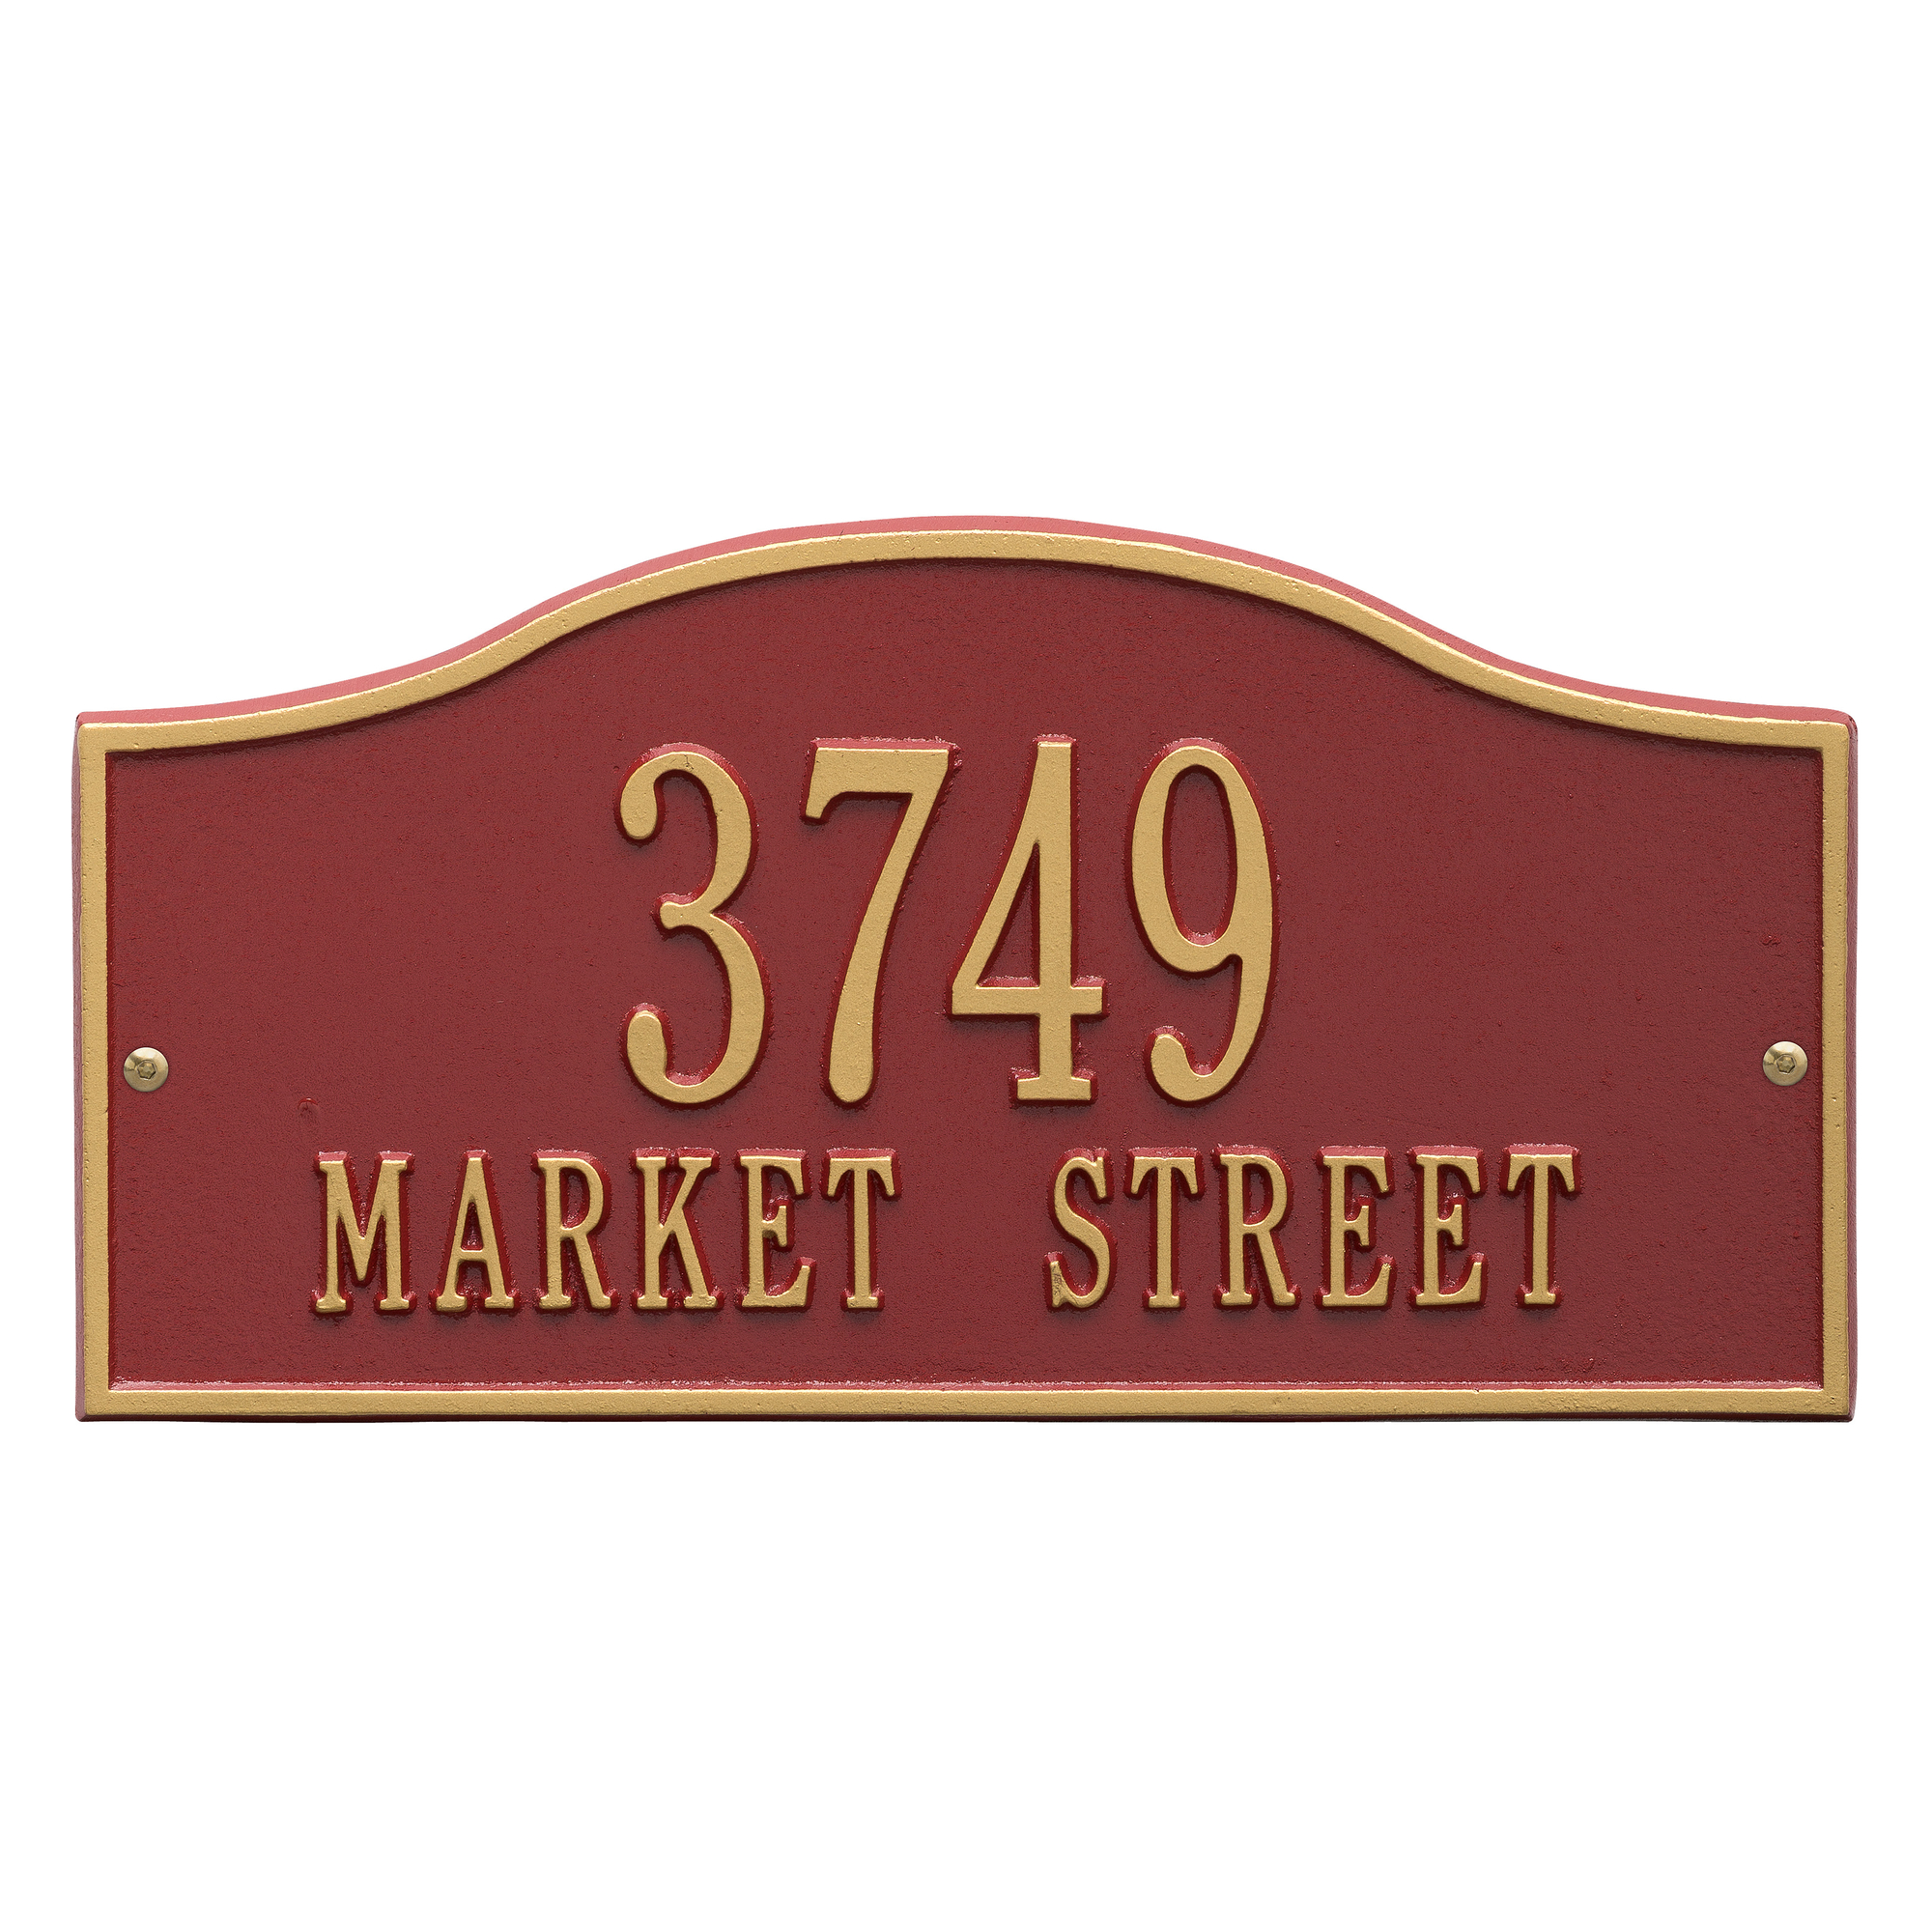 Personalized Whitehall Products Rolling Hills Standard Wall Address Plaque in Red Gold by Address Plaques